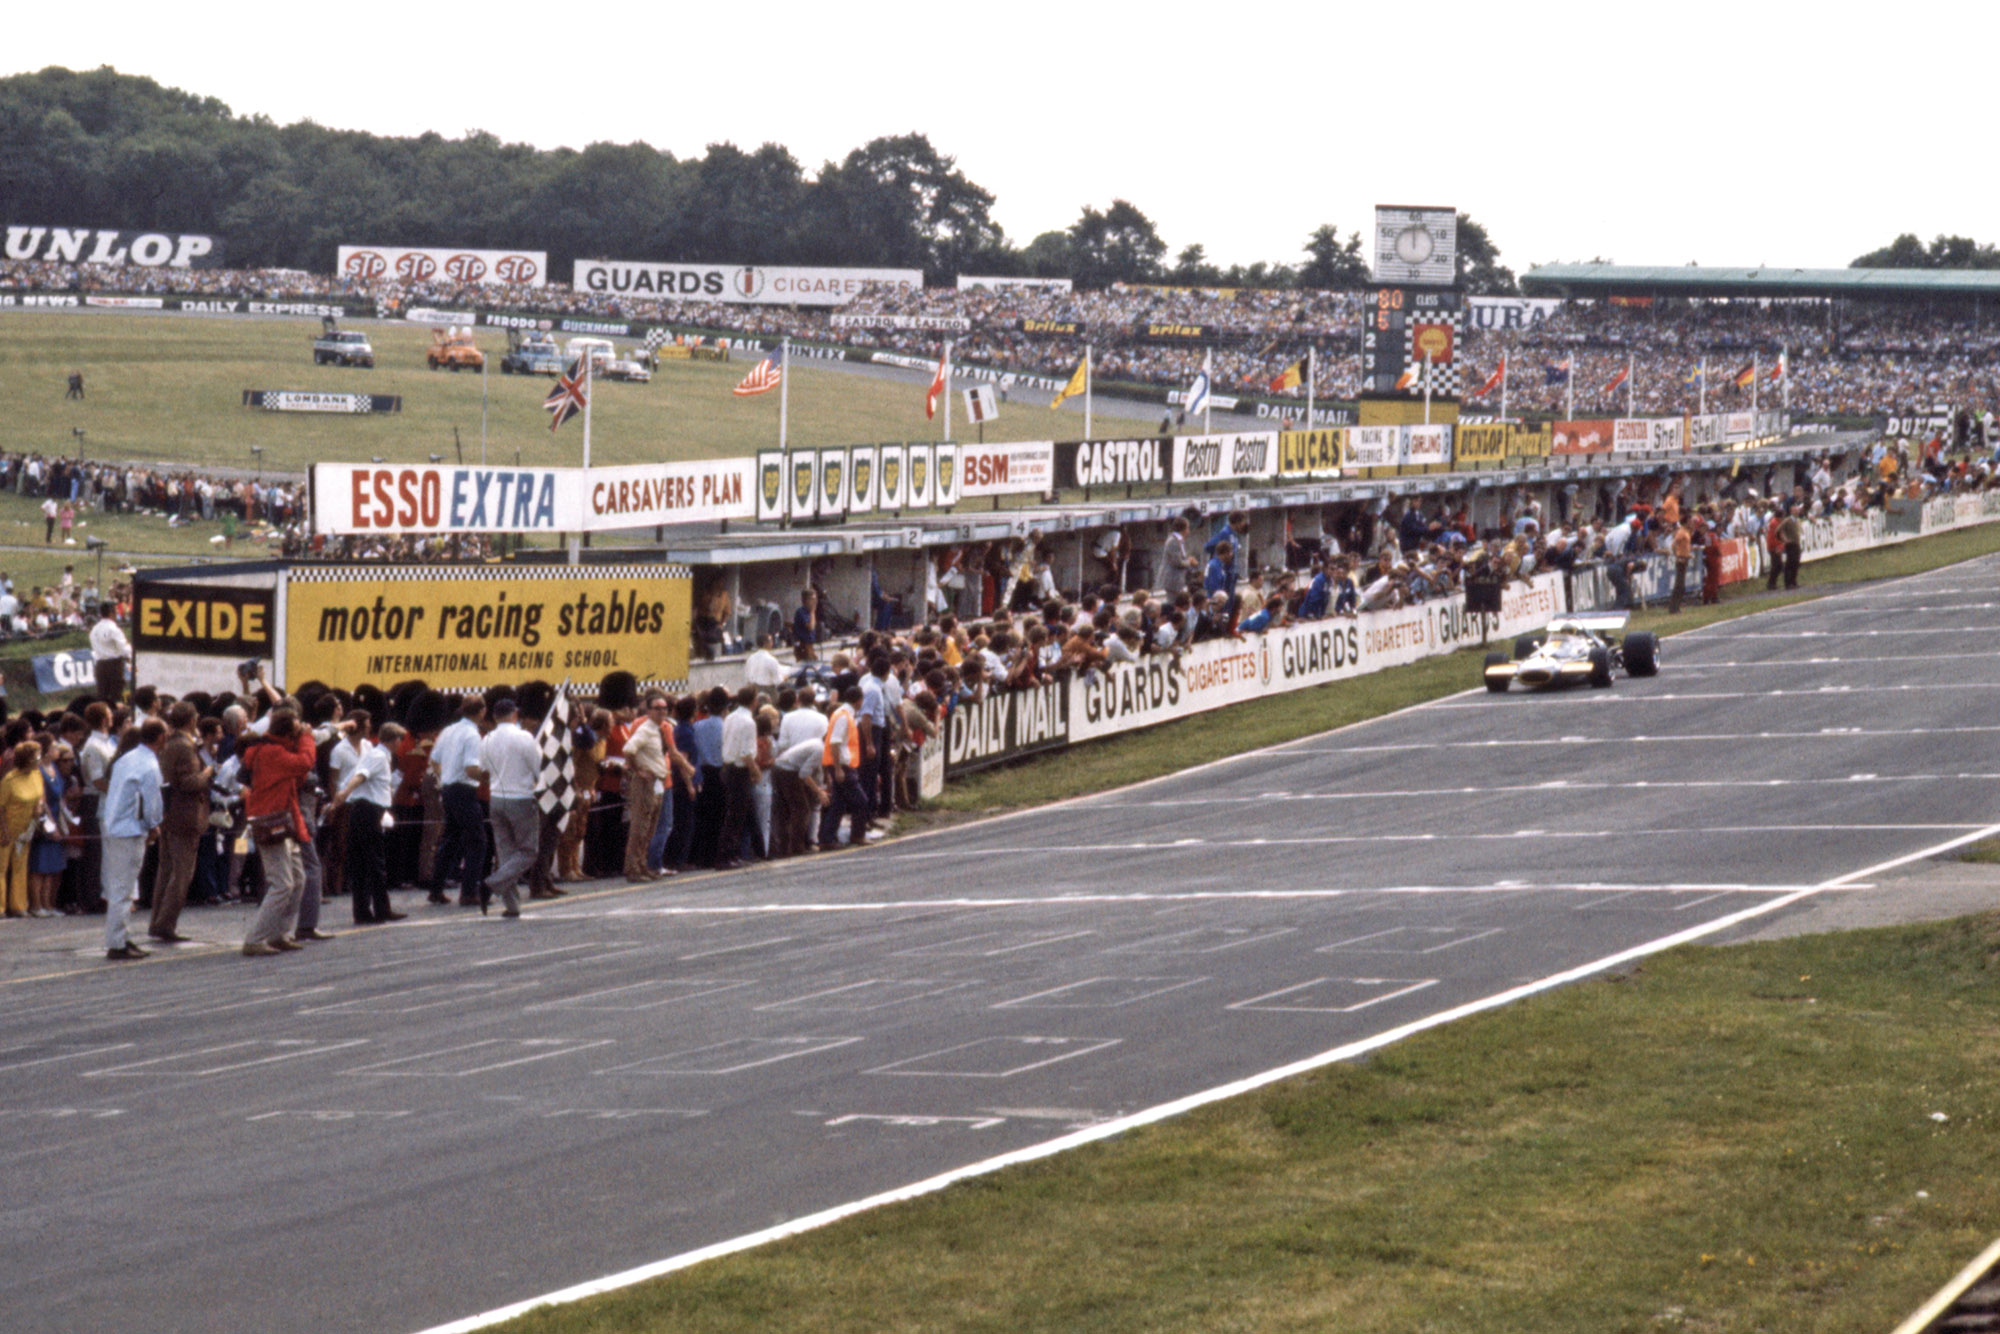 Jack Brabham crosses the line to take secind place at BRands Hatch in the 1970 F1 British Grand Prix